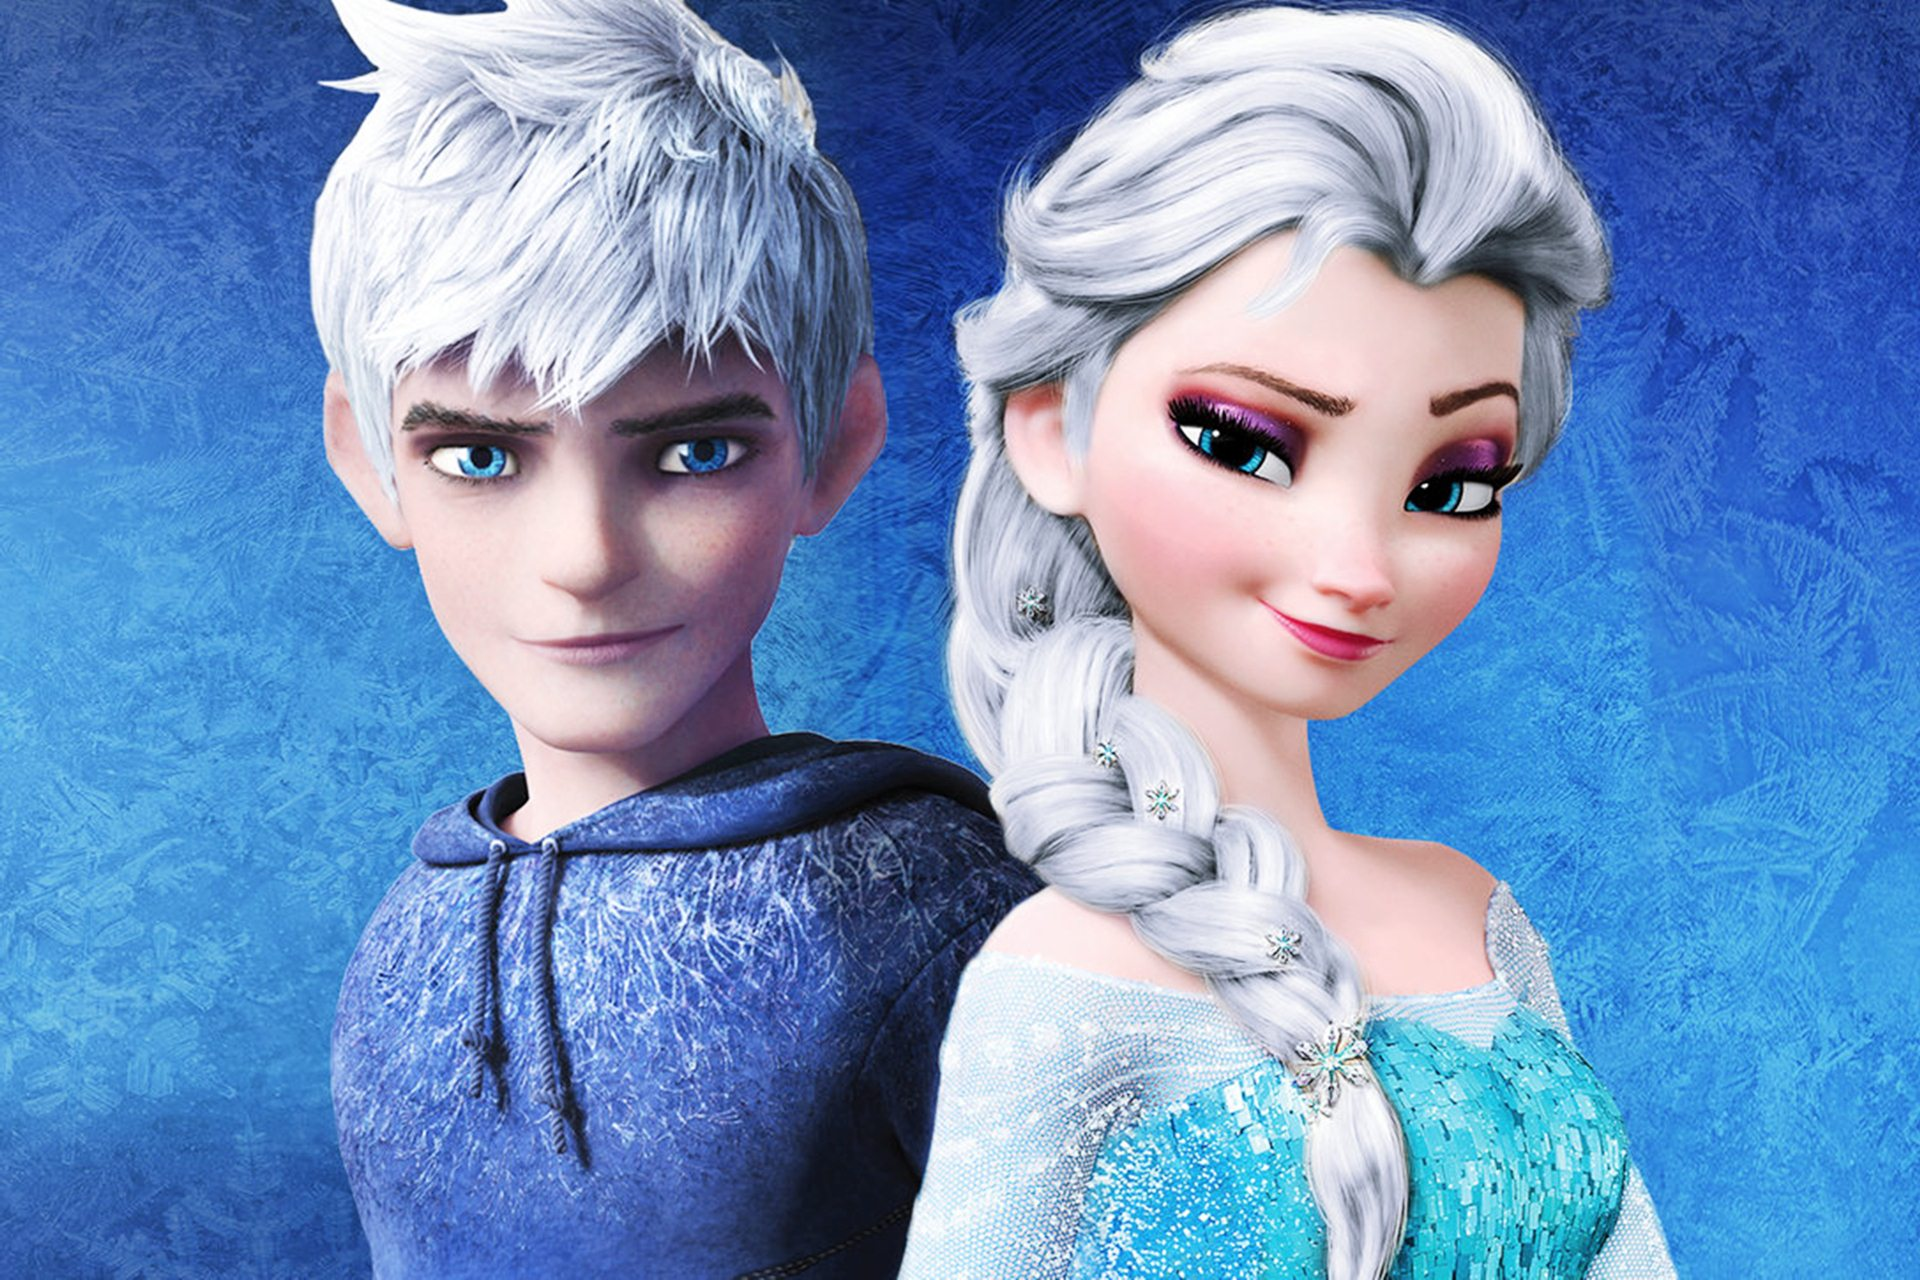 47 Elsa And Jack Frost Wallpapers On Wallpapersafari